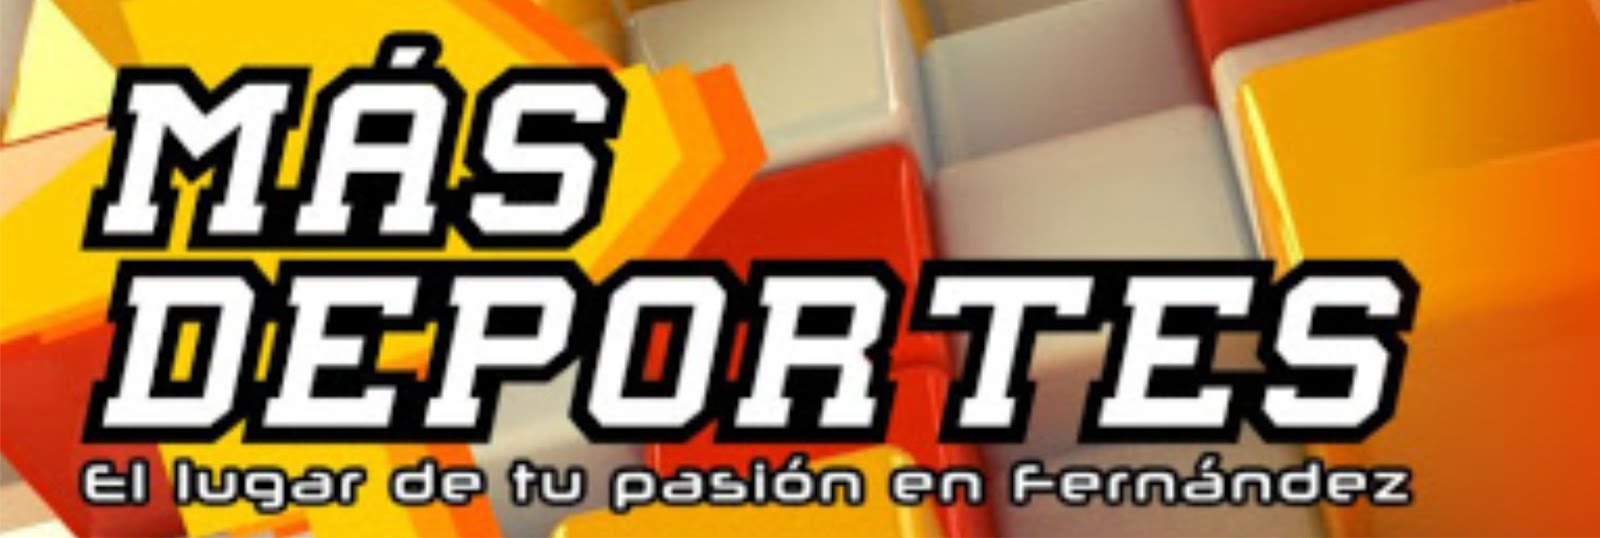 Más Deportes